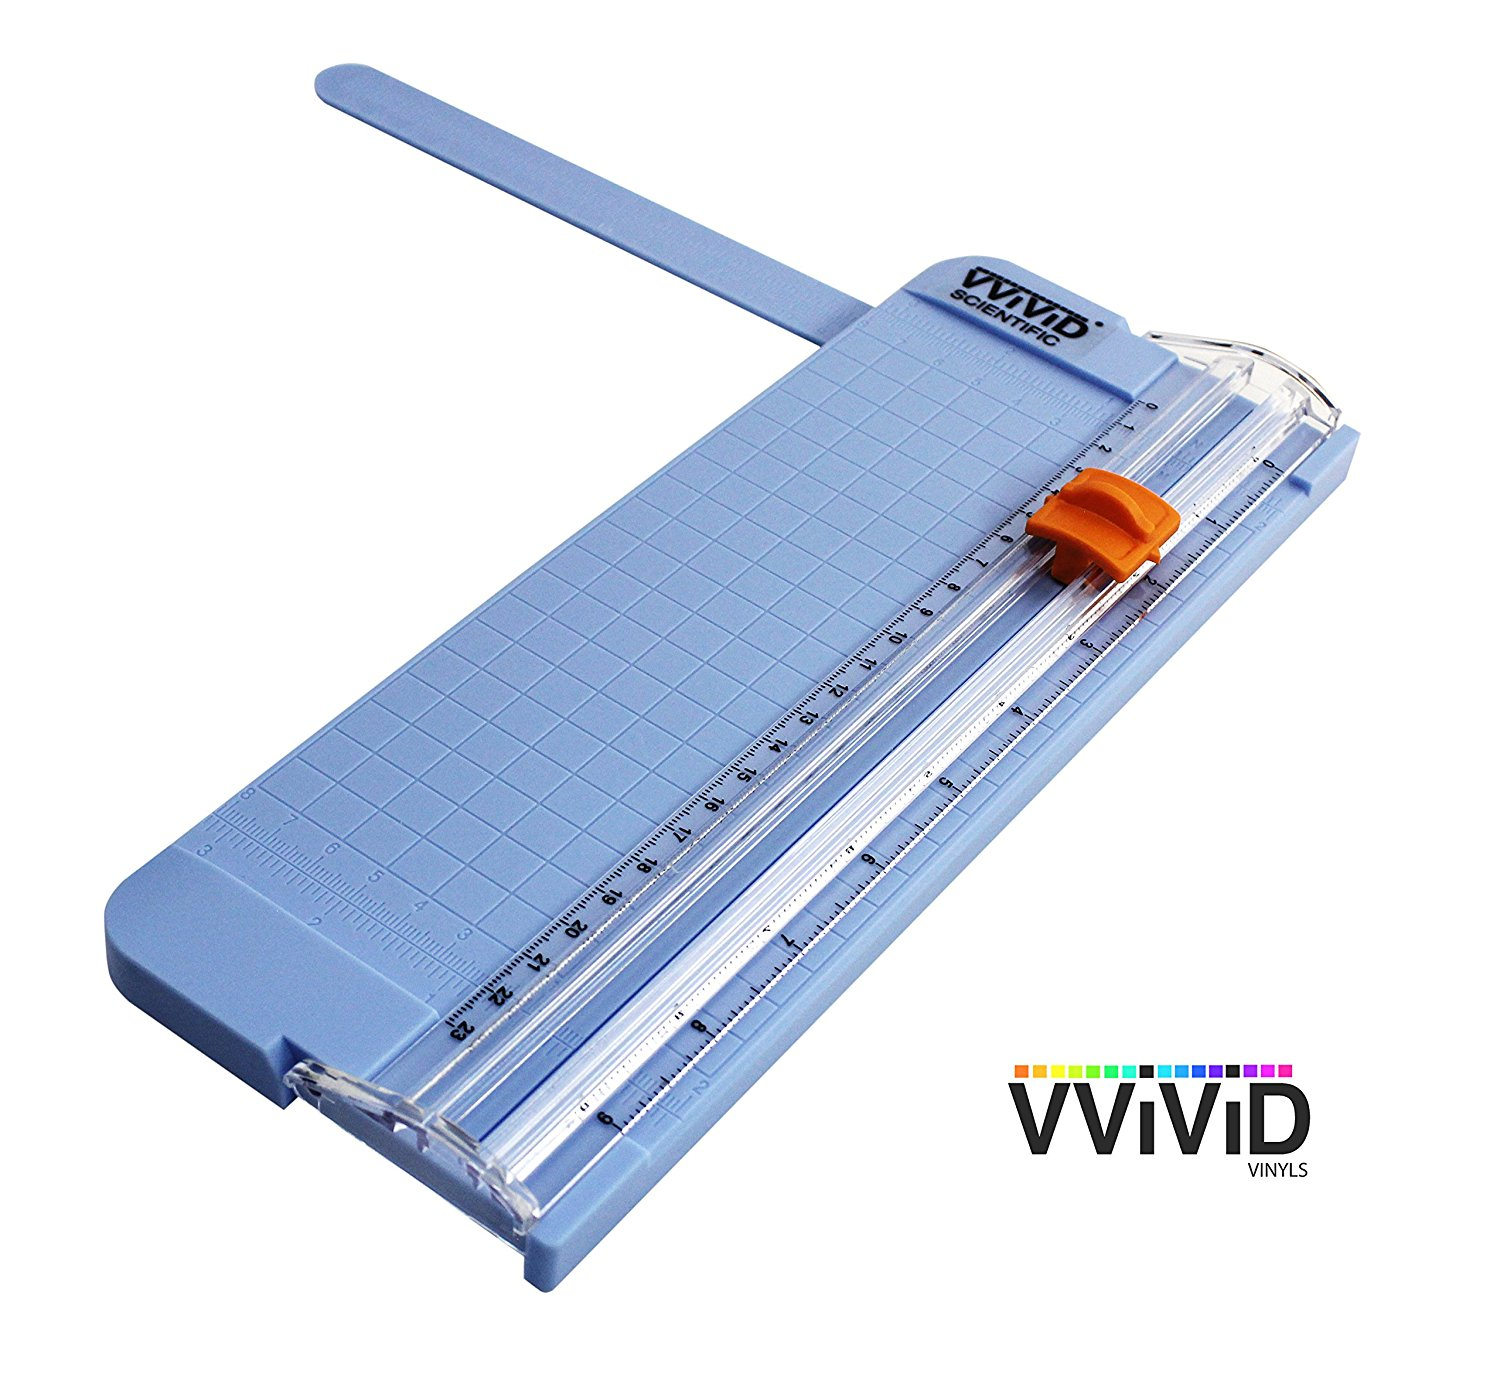 "Portable Sliding Blade Style 9"" Ruled Gridded Paper Trimmer VViViD by VViViD"